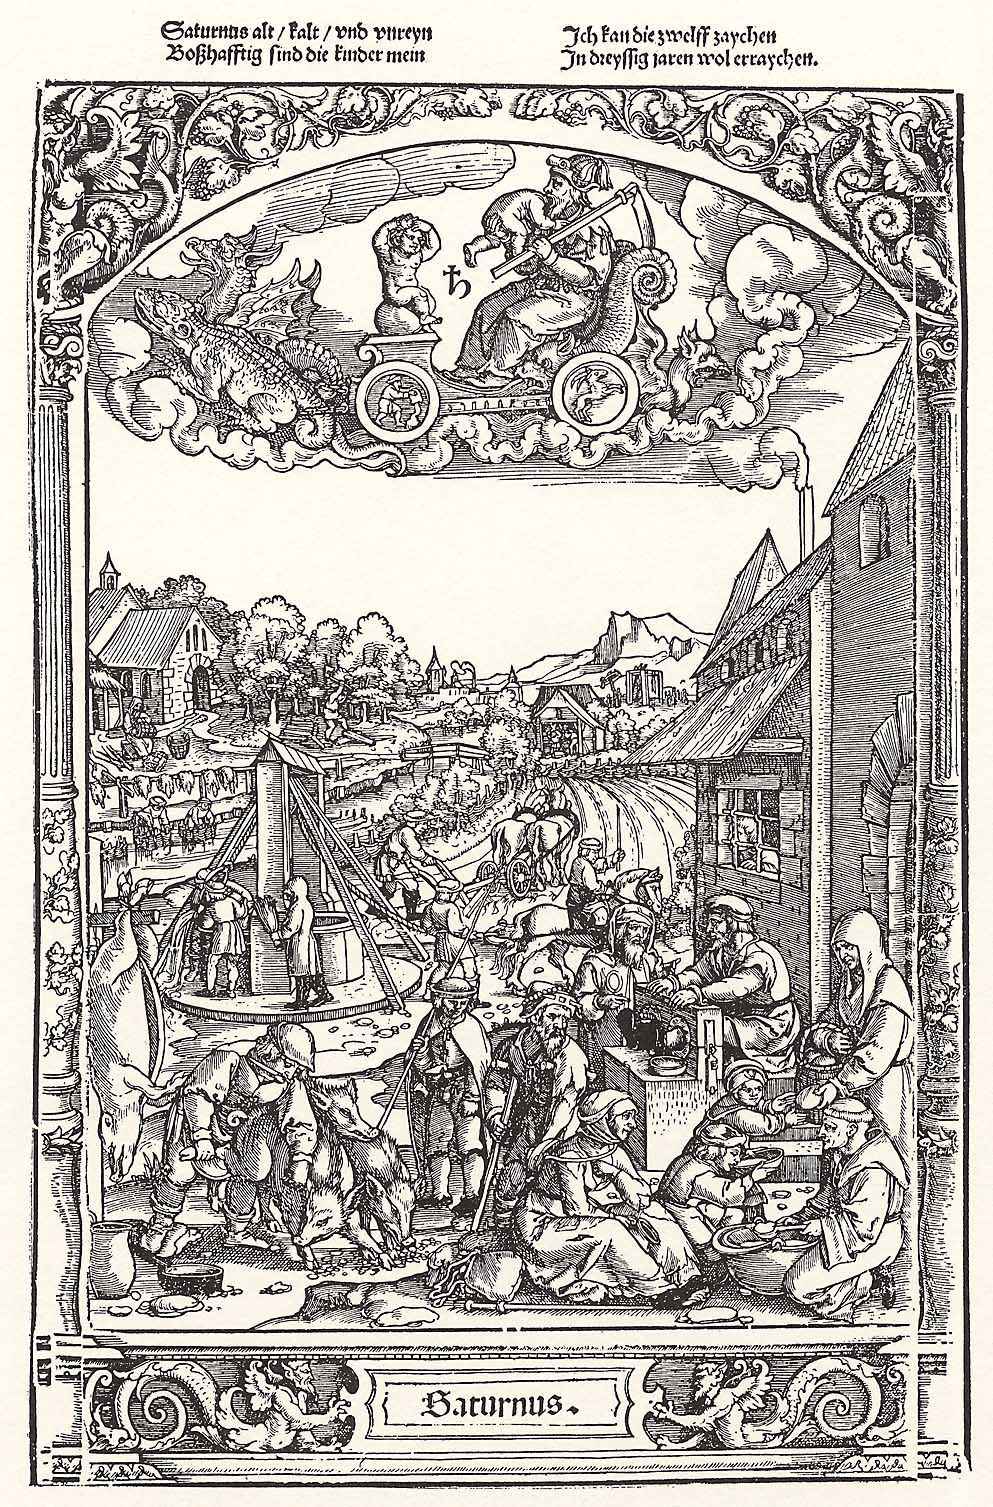 Life of the Children of Saturn, by Georg Pencz in the Folge der Planeten 1530